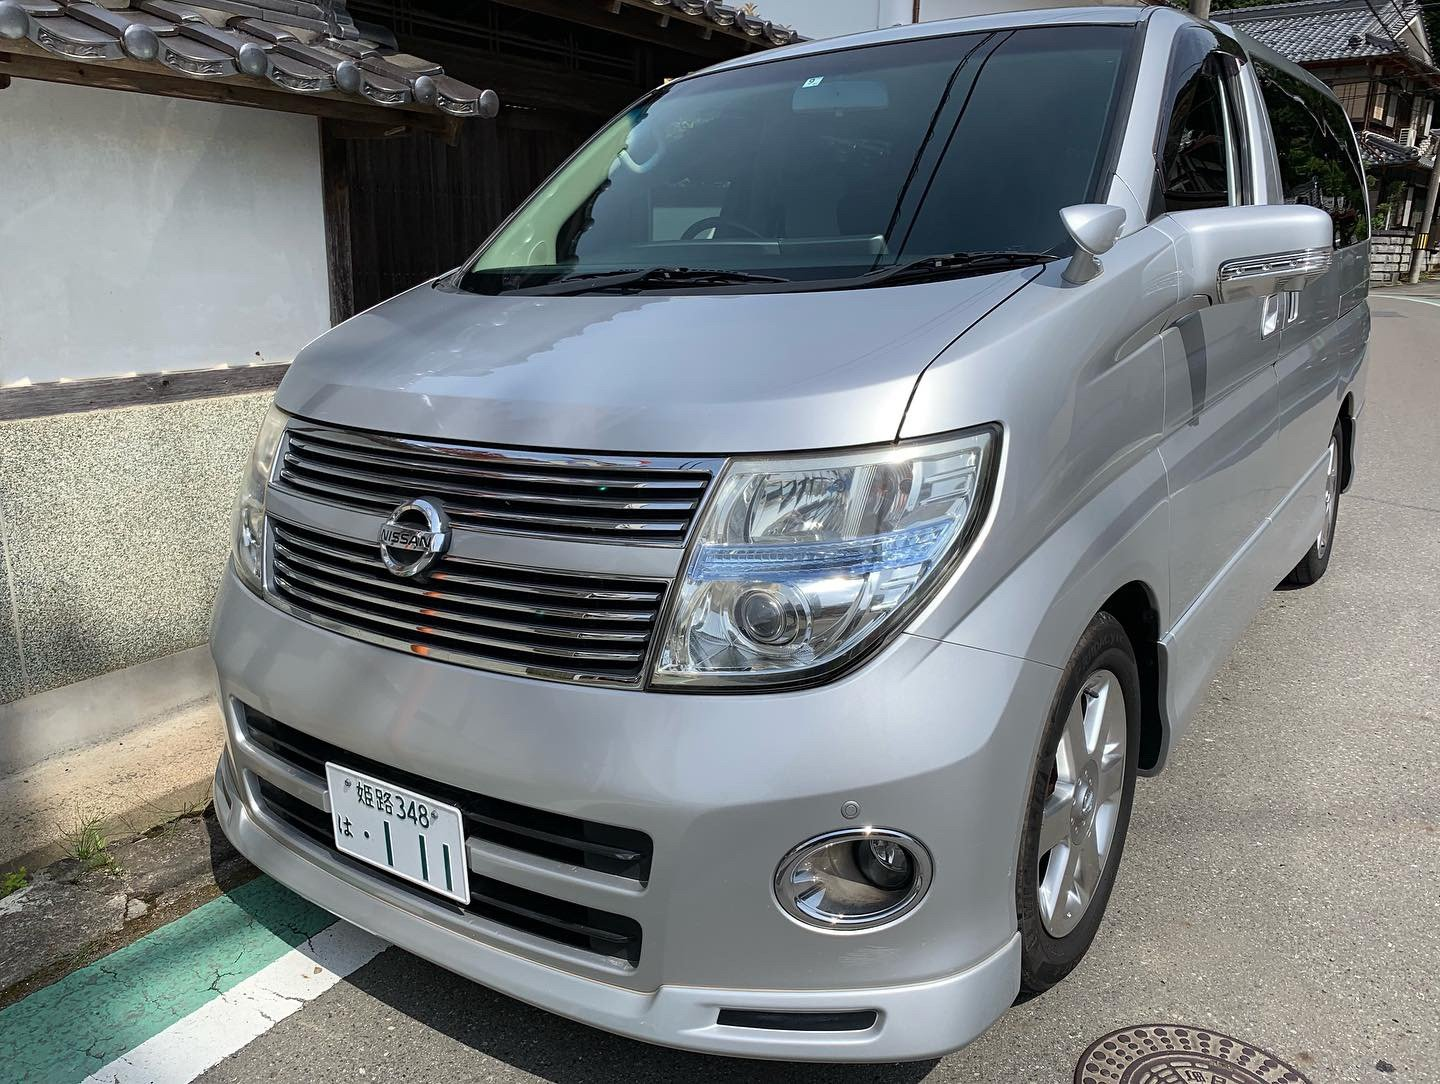 2008 Stunning Nissan Elgrand Highway Star Black Leather Edition SOLD (picture 3 of 6)